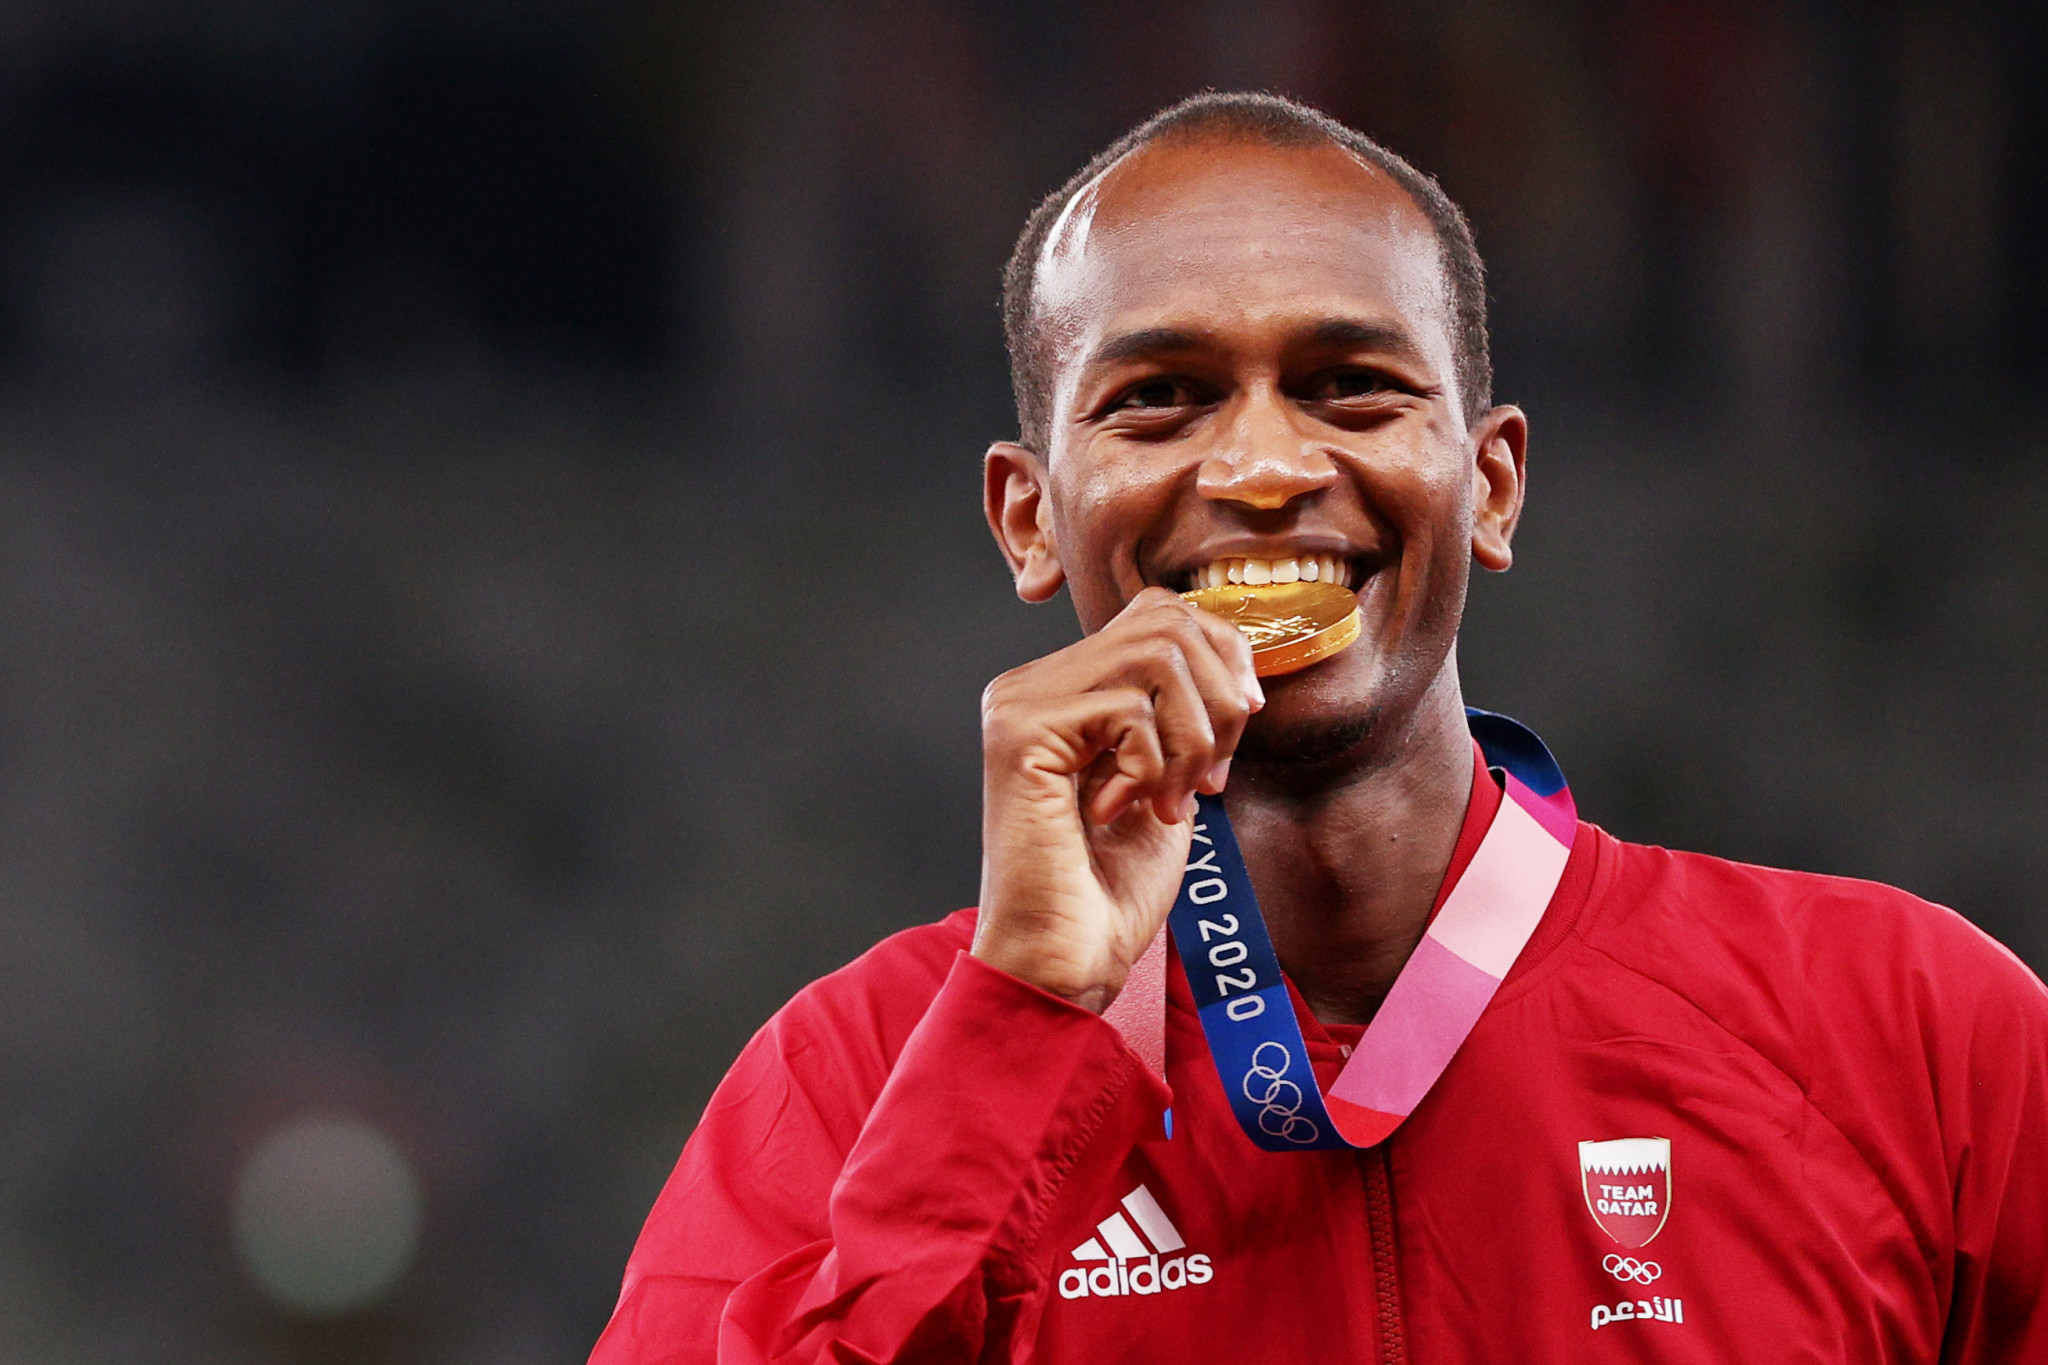 Mutaz Essa Barshim clinched one of Qatar's two gold medals at Tokyo 2020, sharing it with Gianmarco Tamberi in the men's high jump ©Getty Images